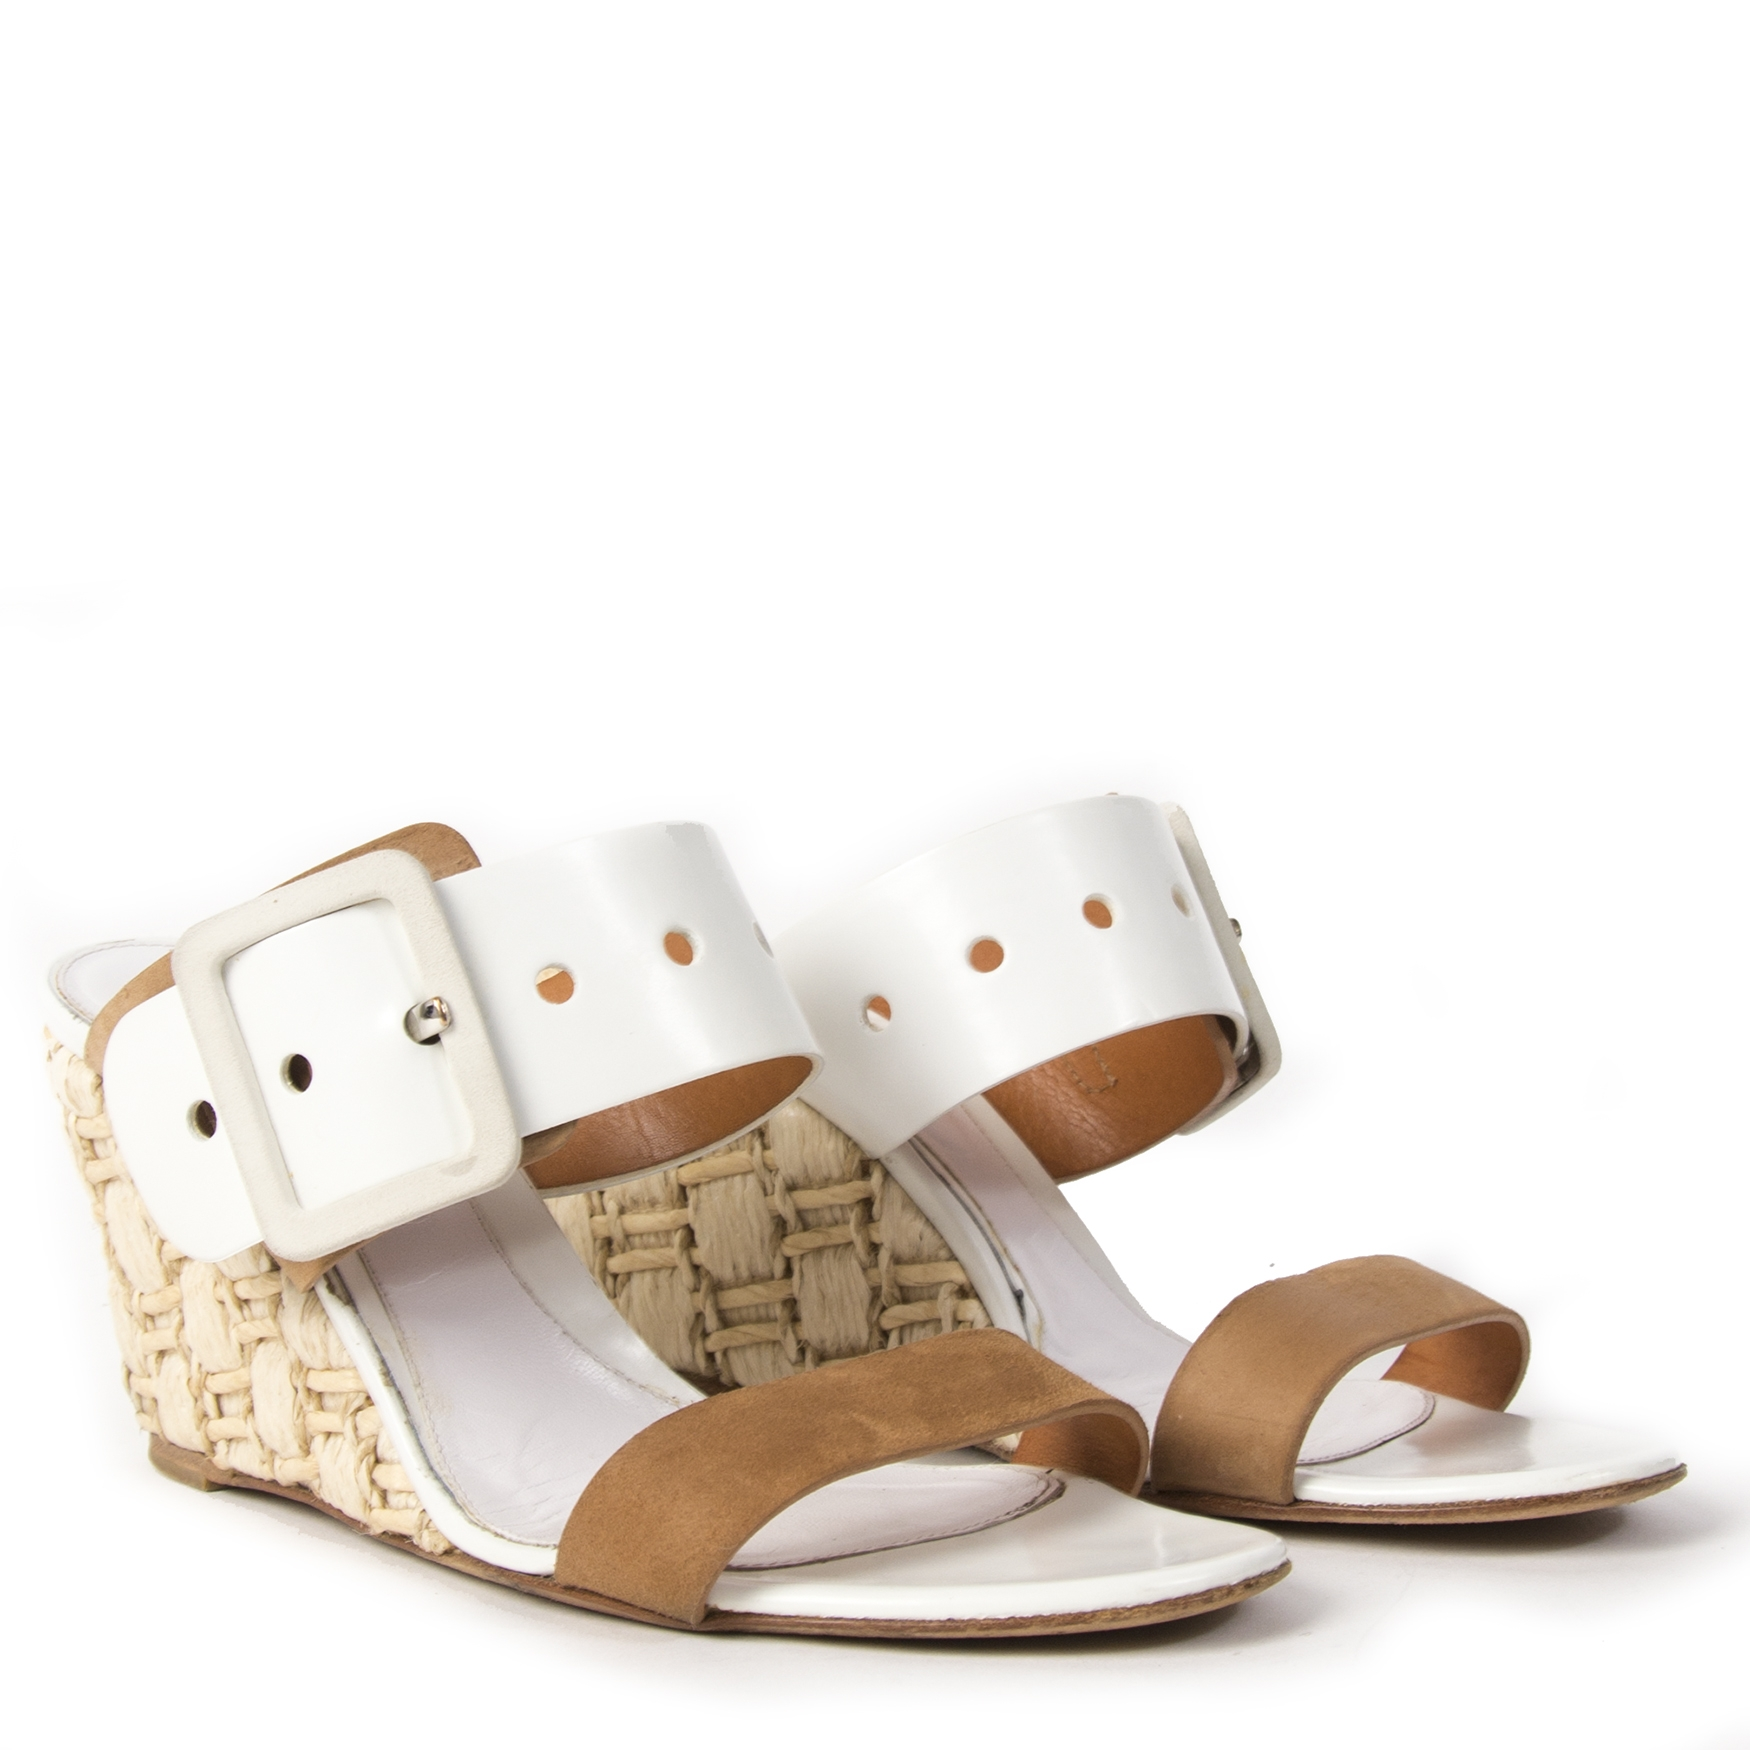 Sergio Rossi White and Camel Raffia Wedge Heels - size 38.5